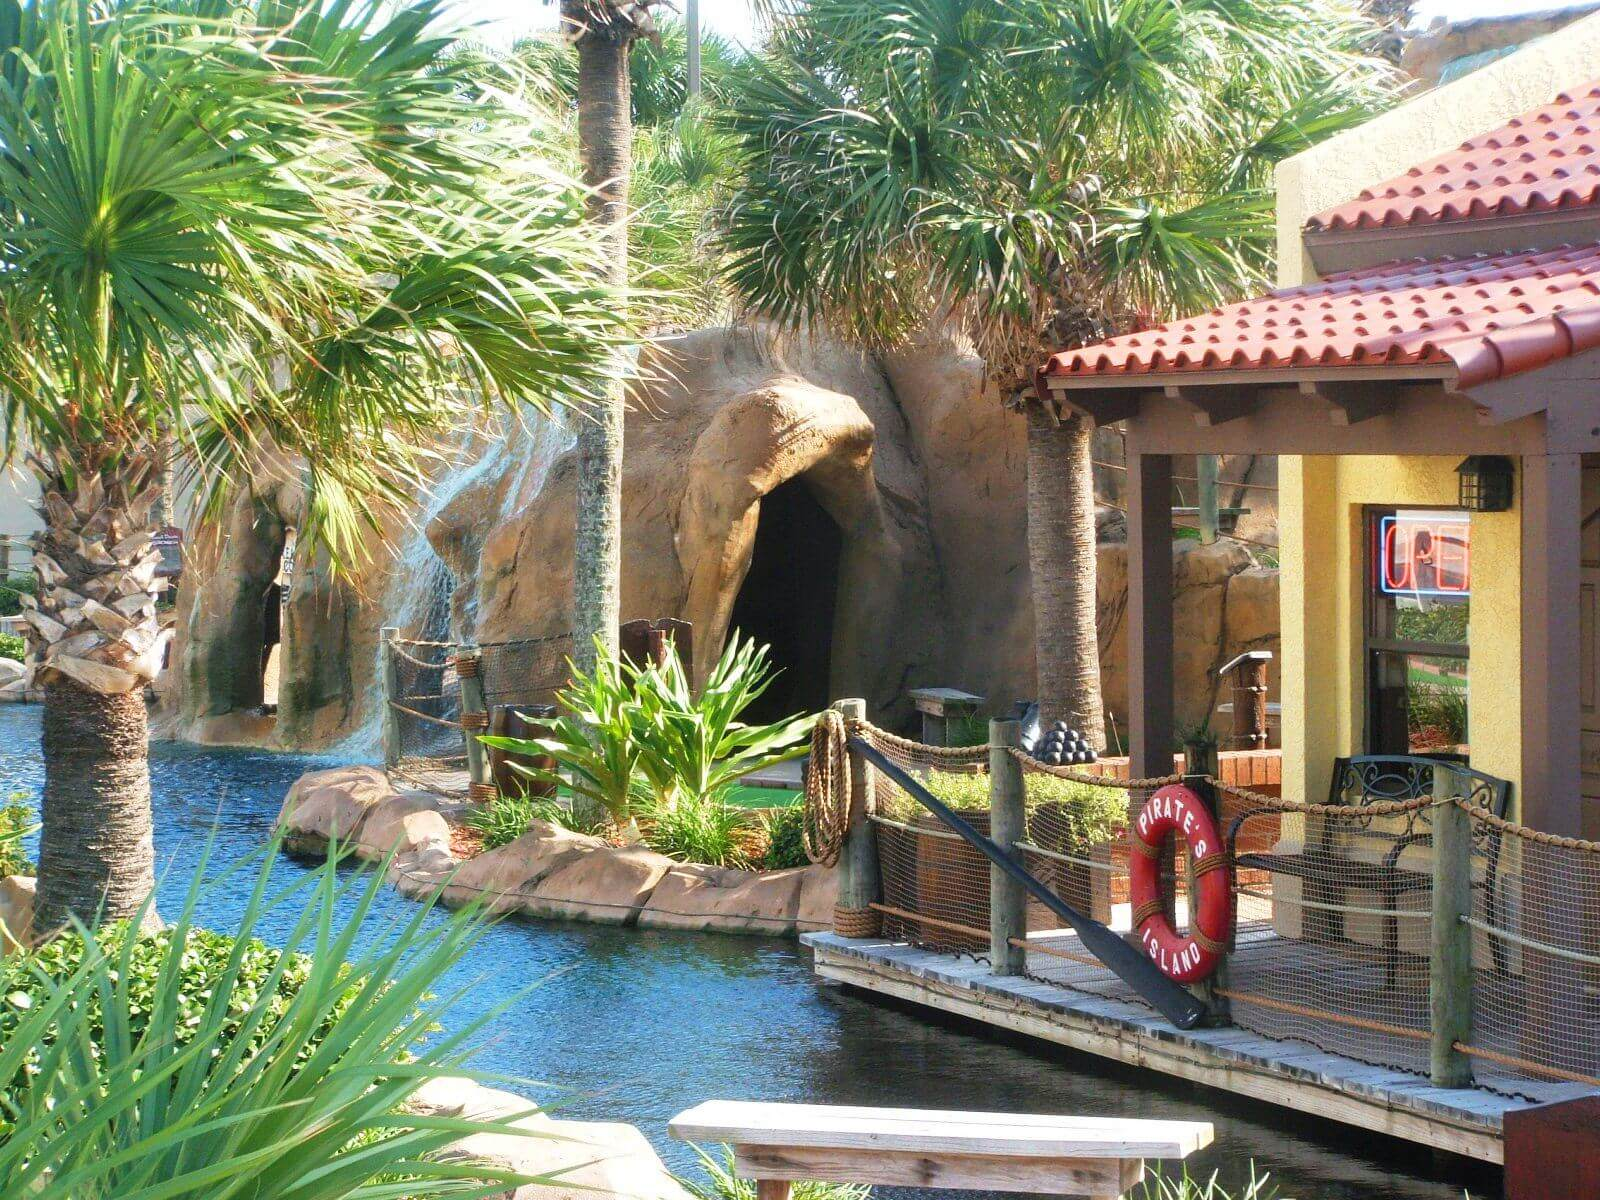 Pirate's Island Adventure Golf em Orlando: Daytona Beach Shores